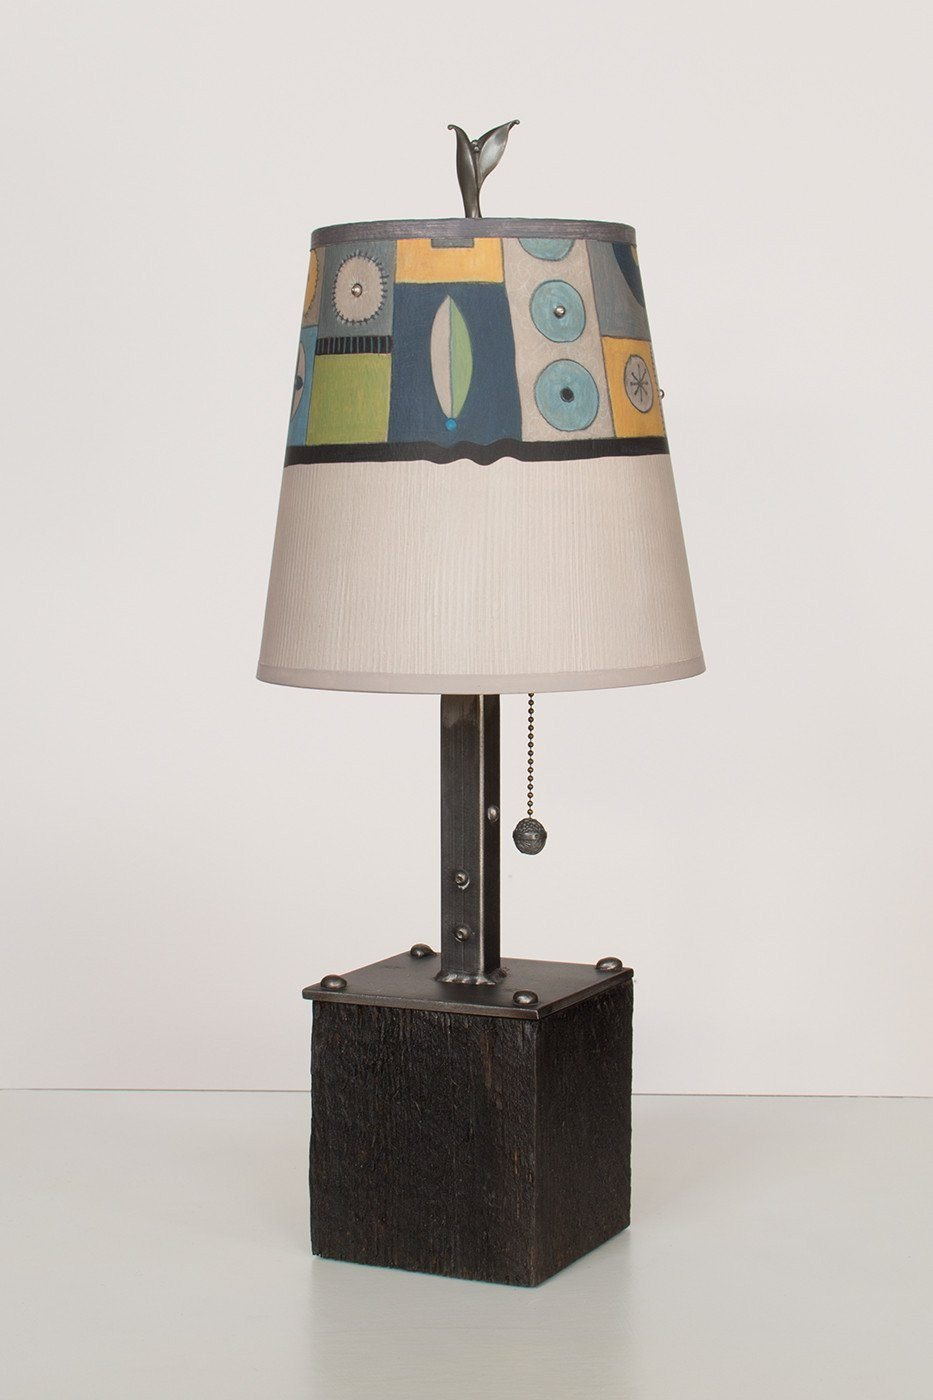 Steel Table Lamp on Reclaimed Wood with Small Drum Shade in Lucky Mosaic Oyster Lit